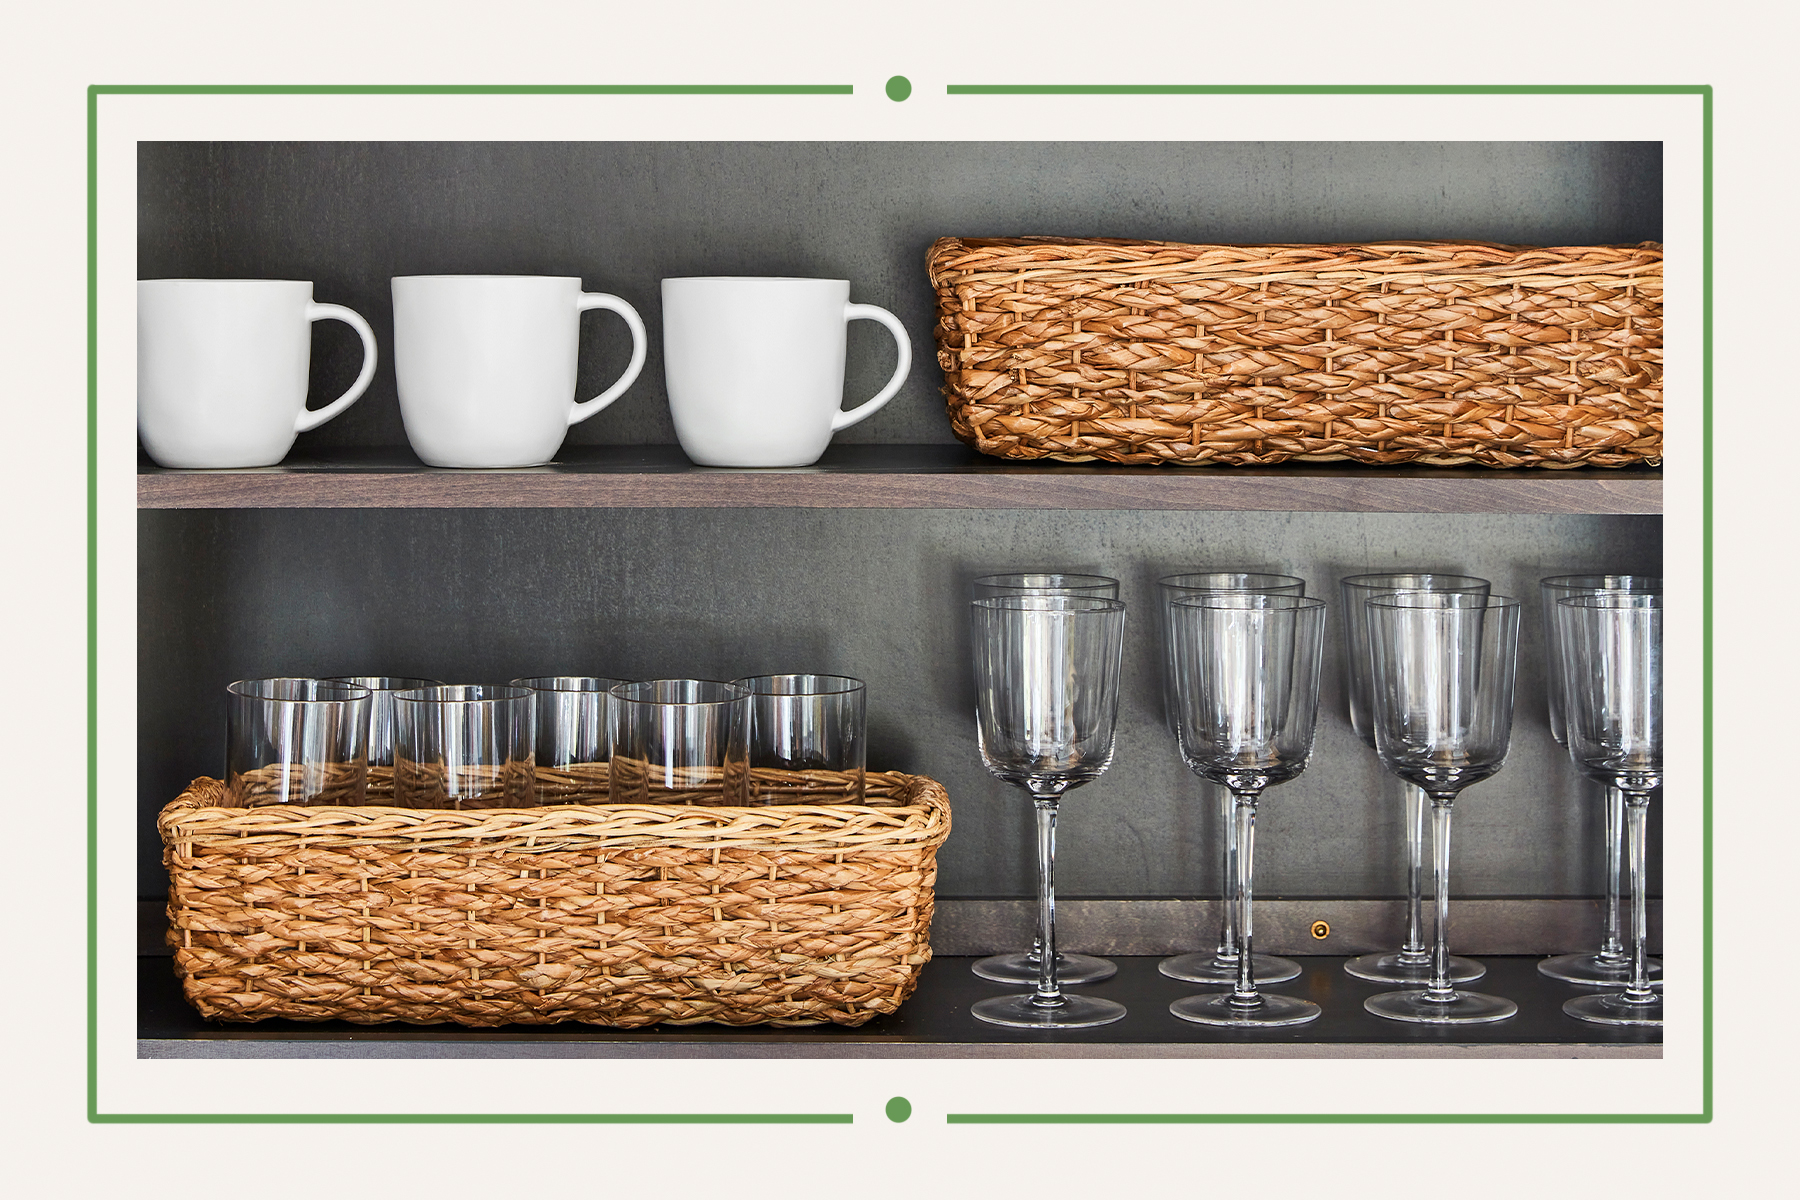 Organized cabinet with glasses and woven baskets